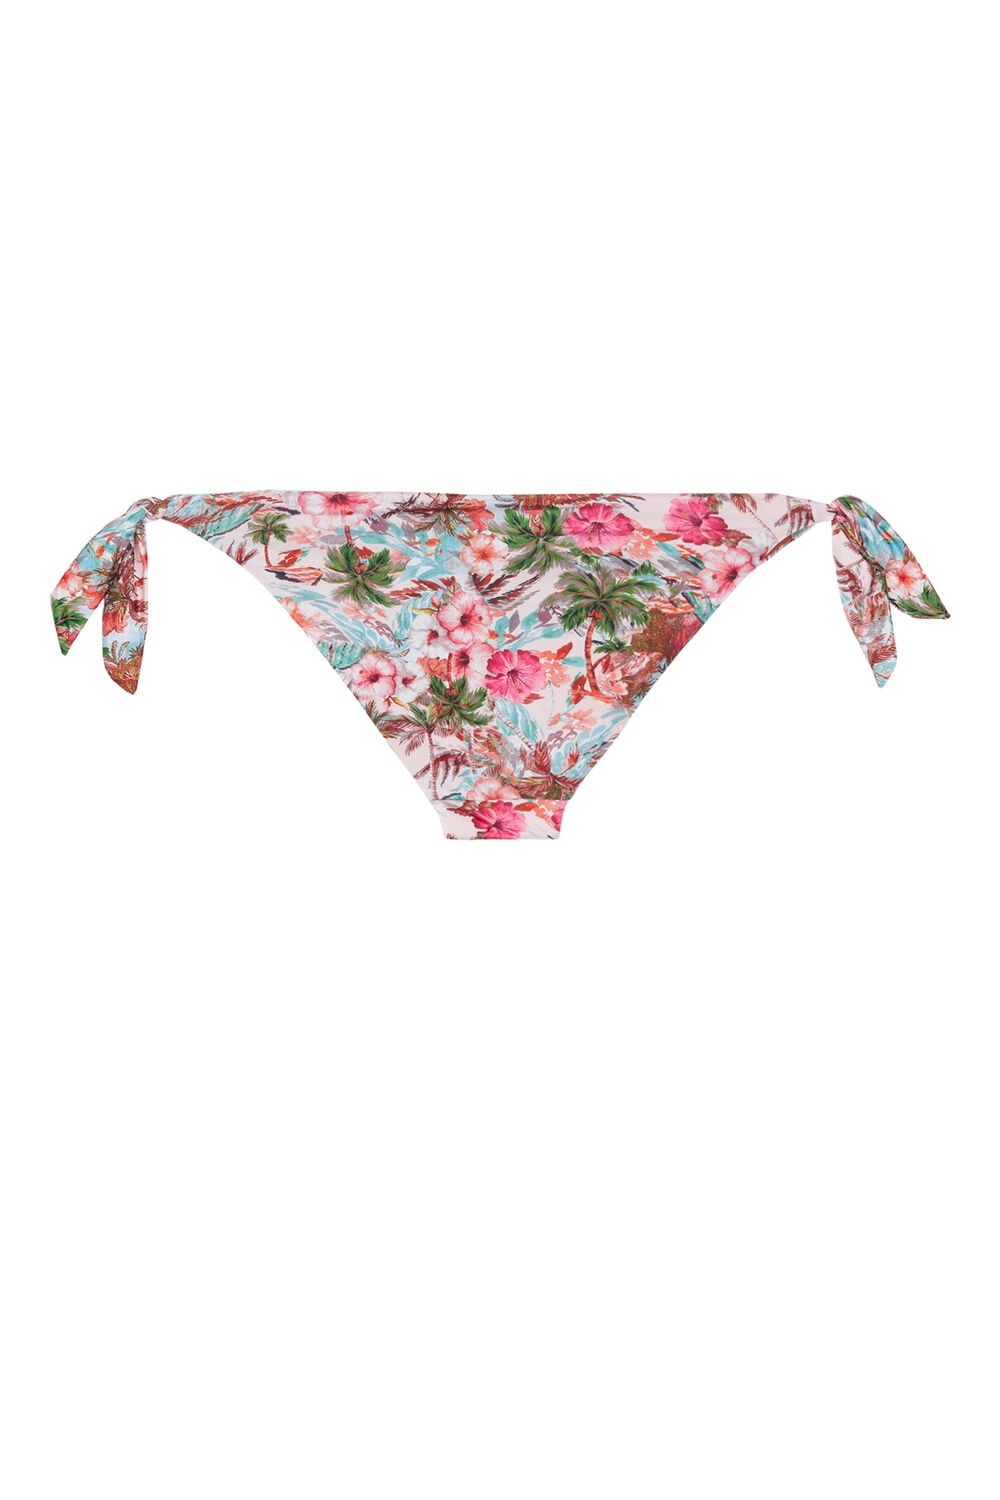 Bali Tropical Bow Brief Bikini